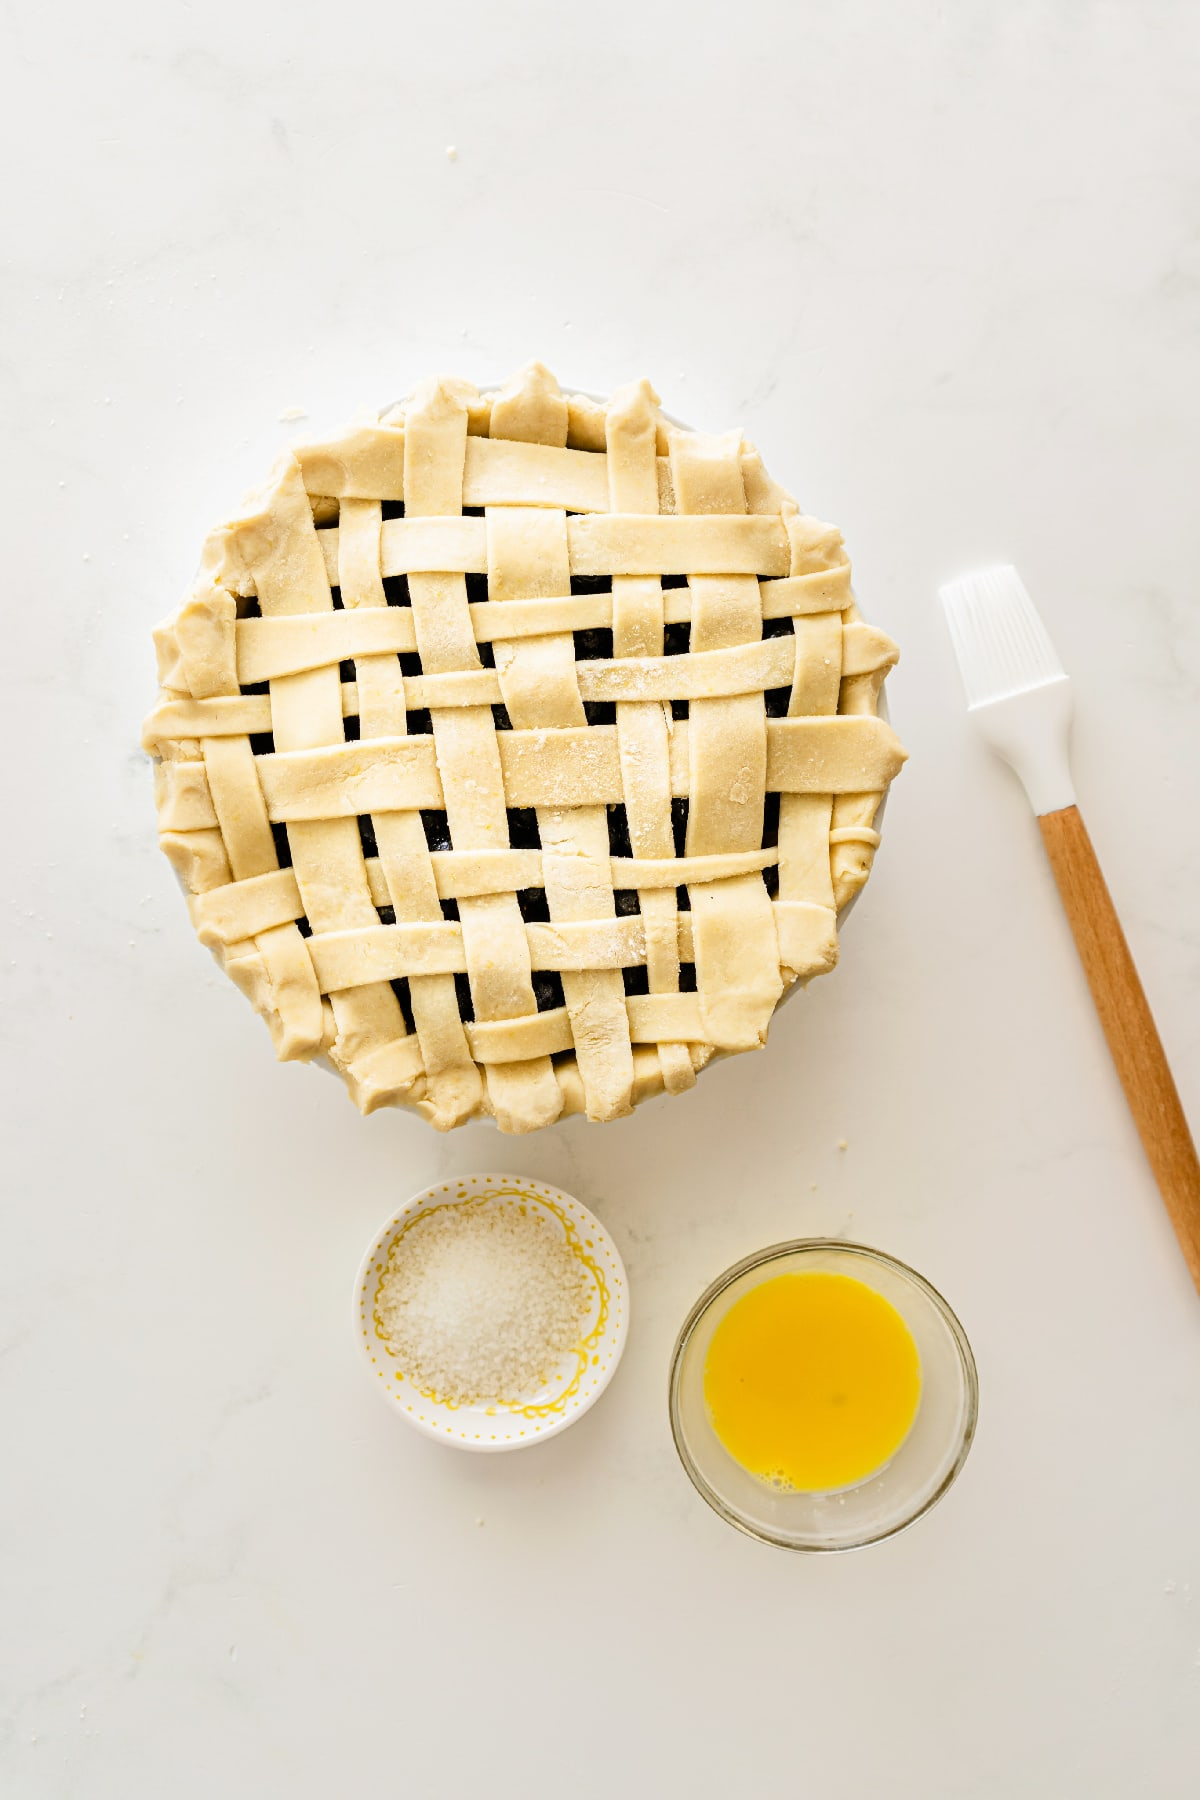 Blueberry pie with egg wash and sanding sugar